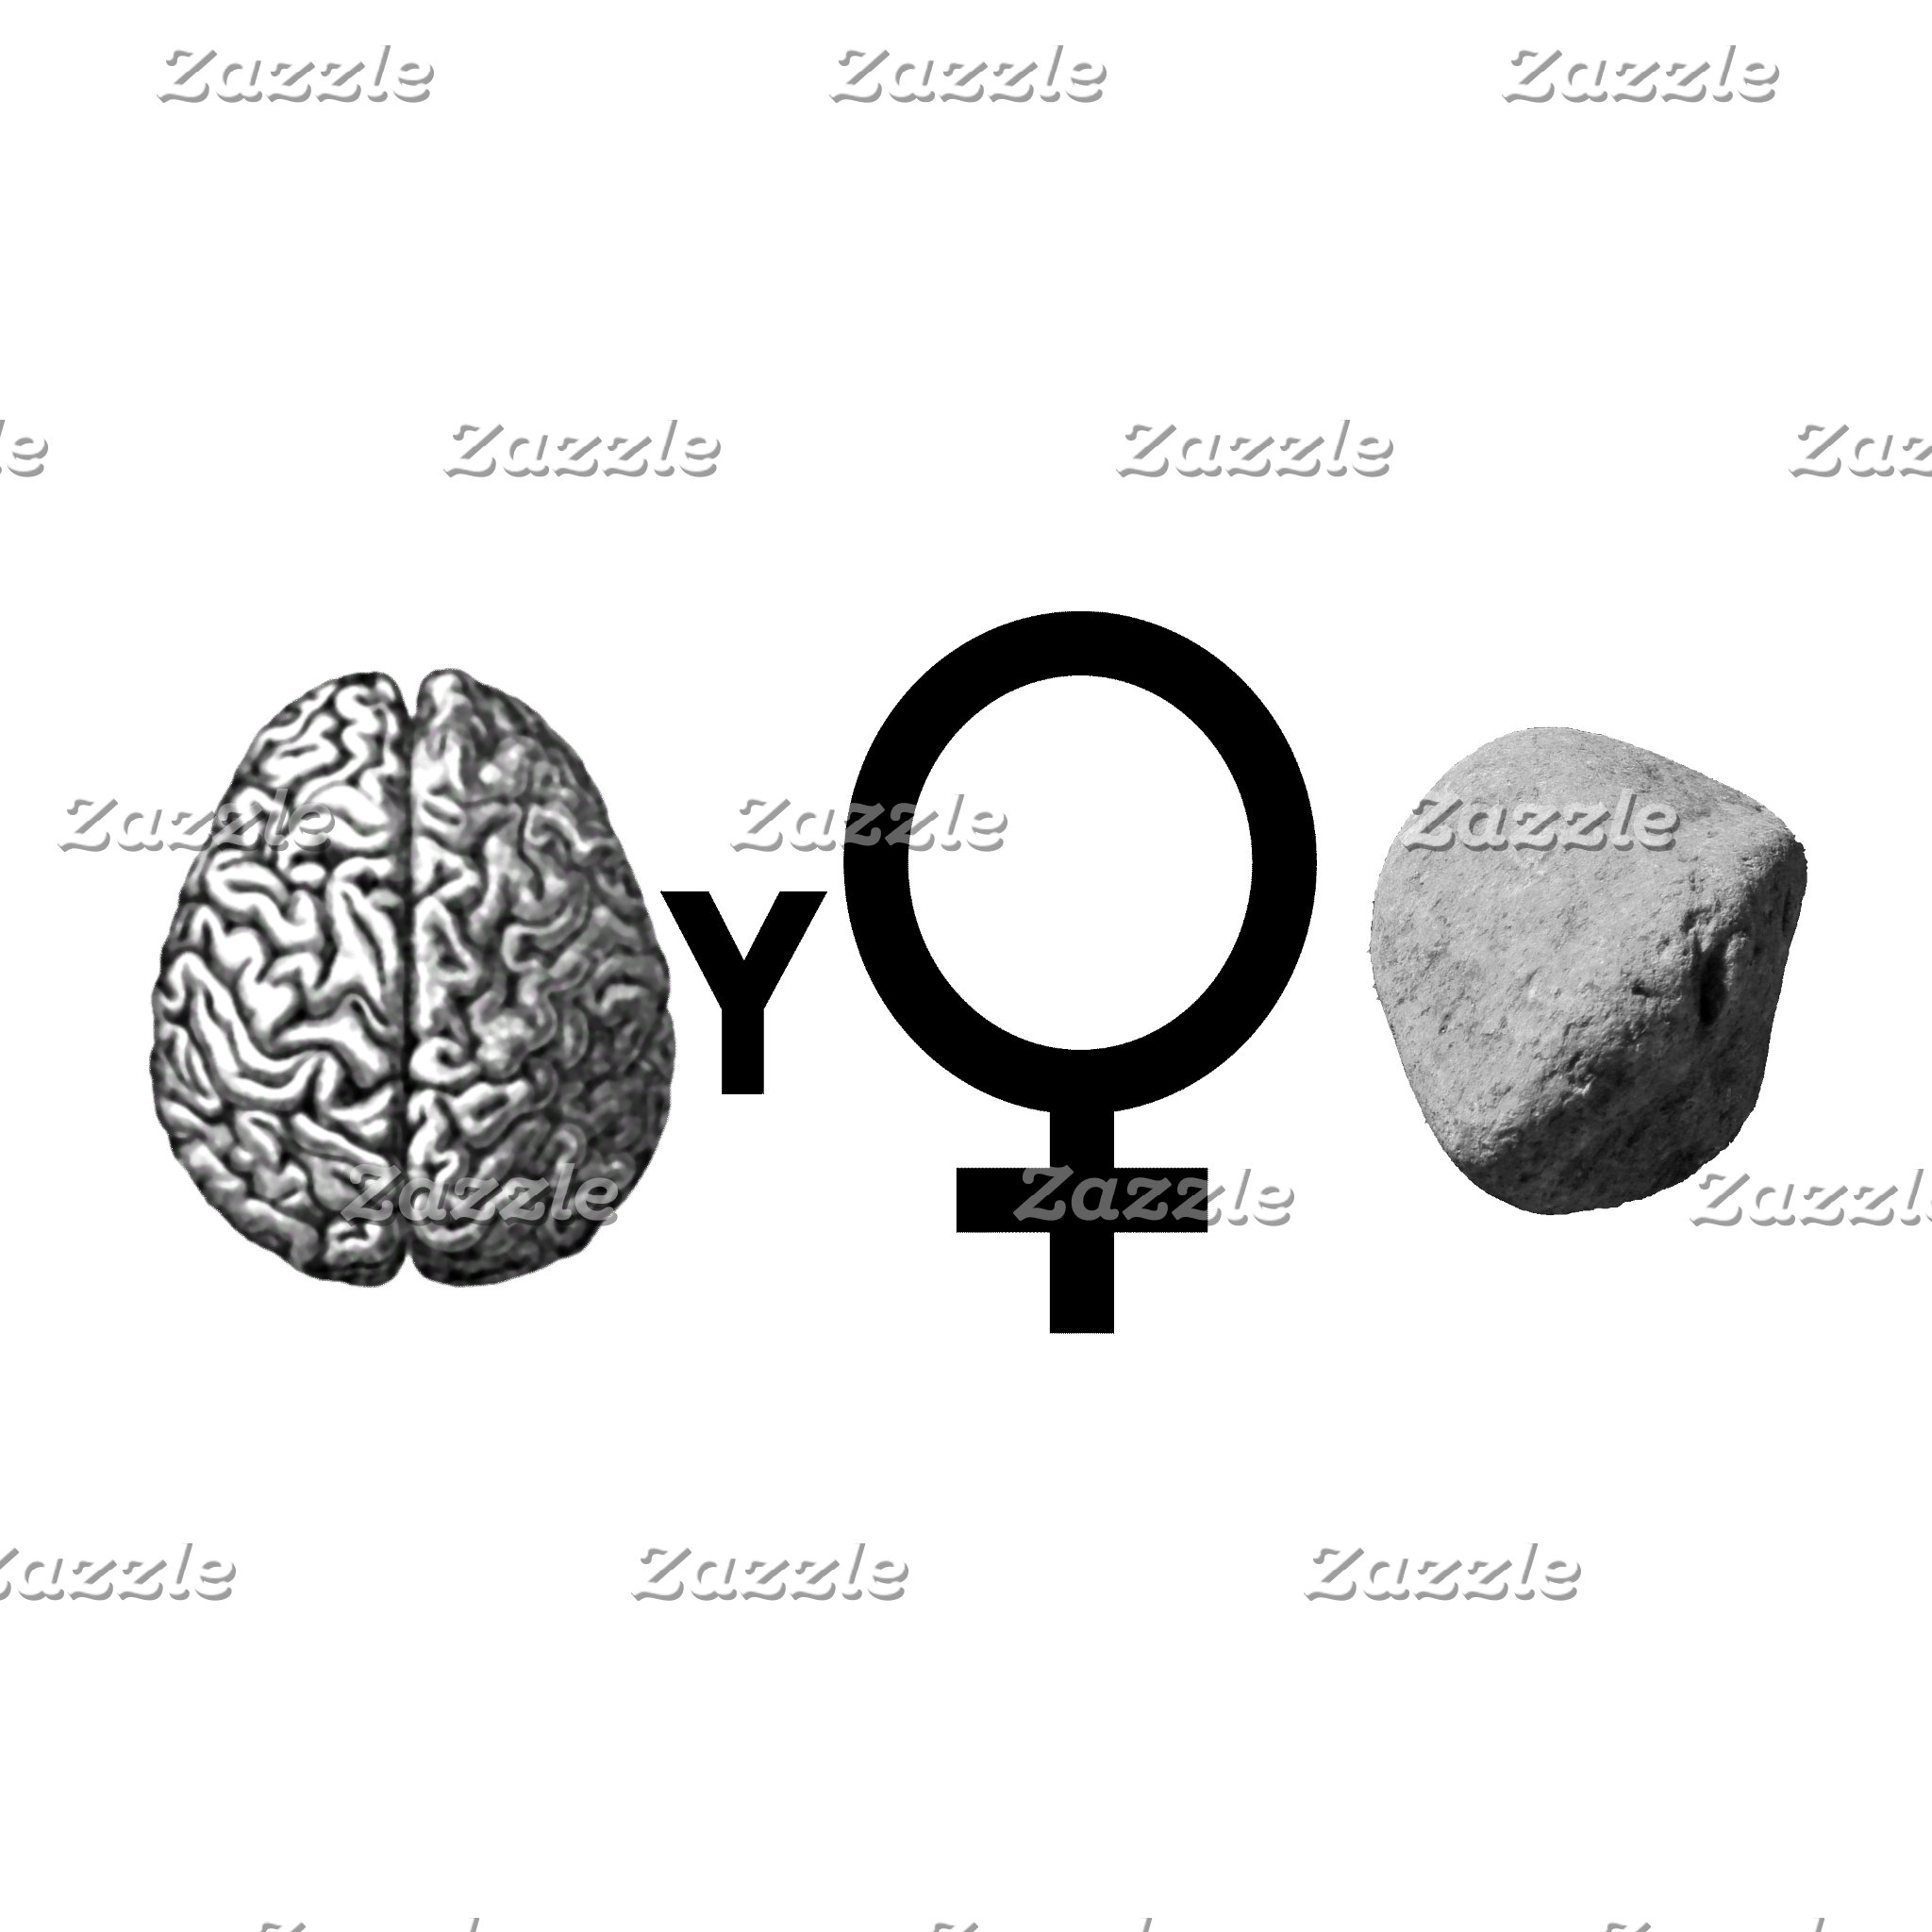 Brainy Girls ROCK!